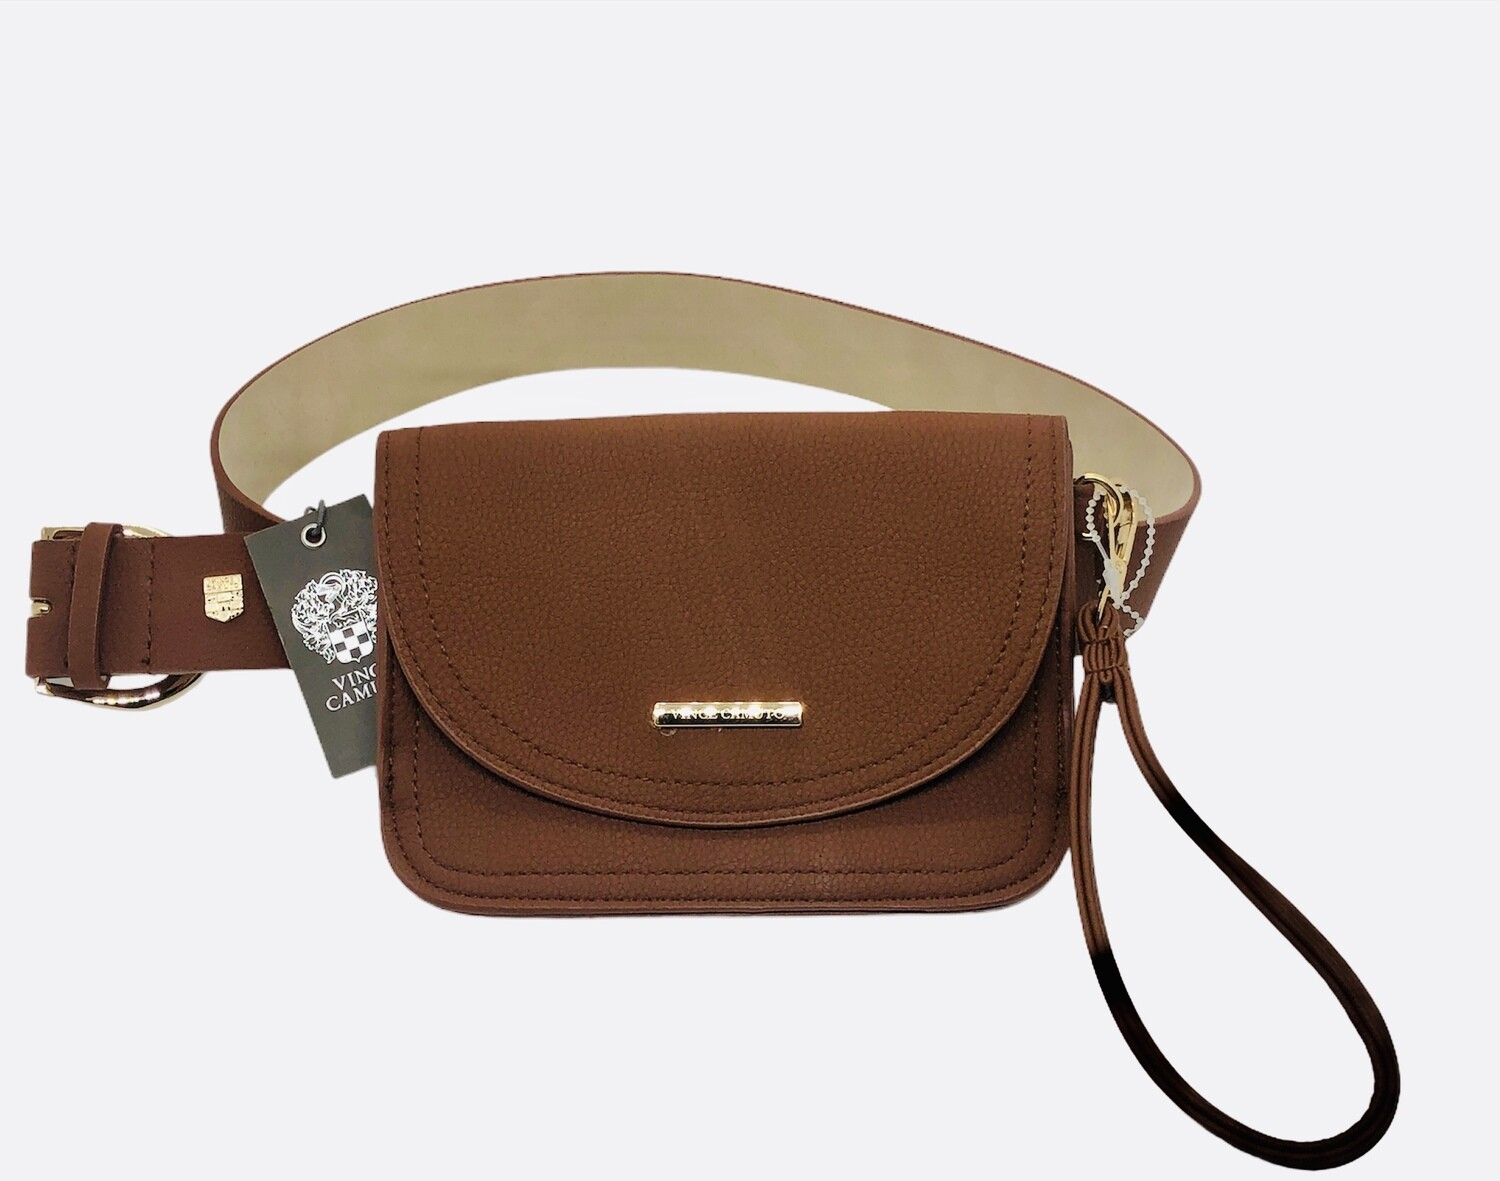 New 2-in-1 VINCE CAMUTO Pebble Leather Belted Fanny Pack / Wristlet Large